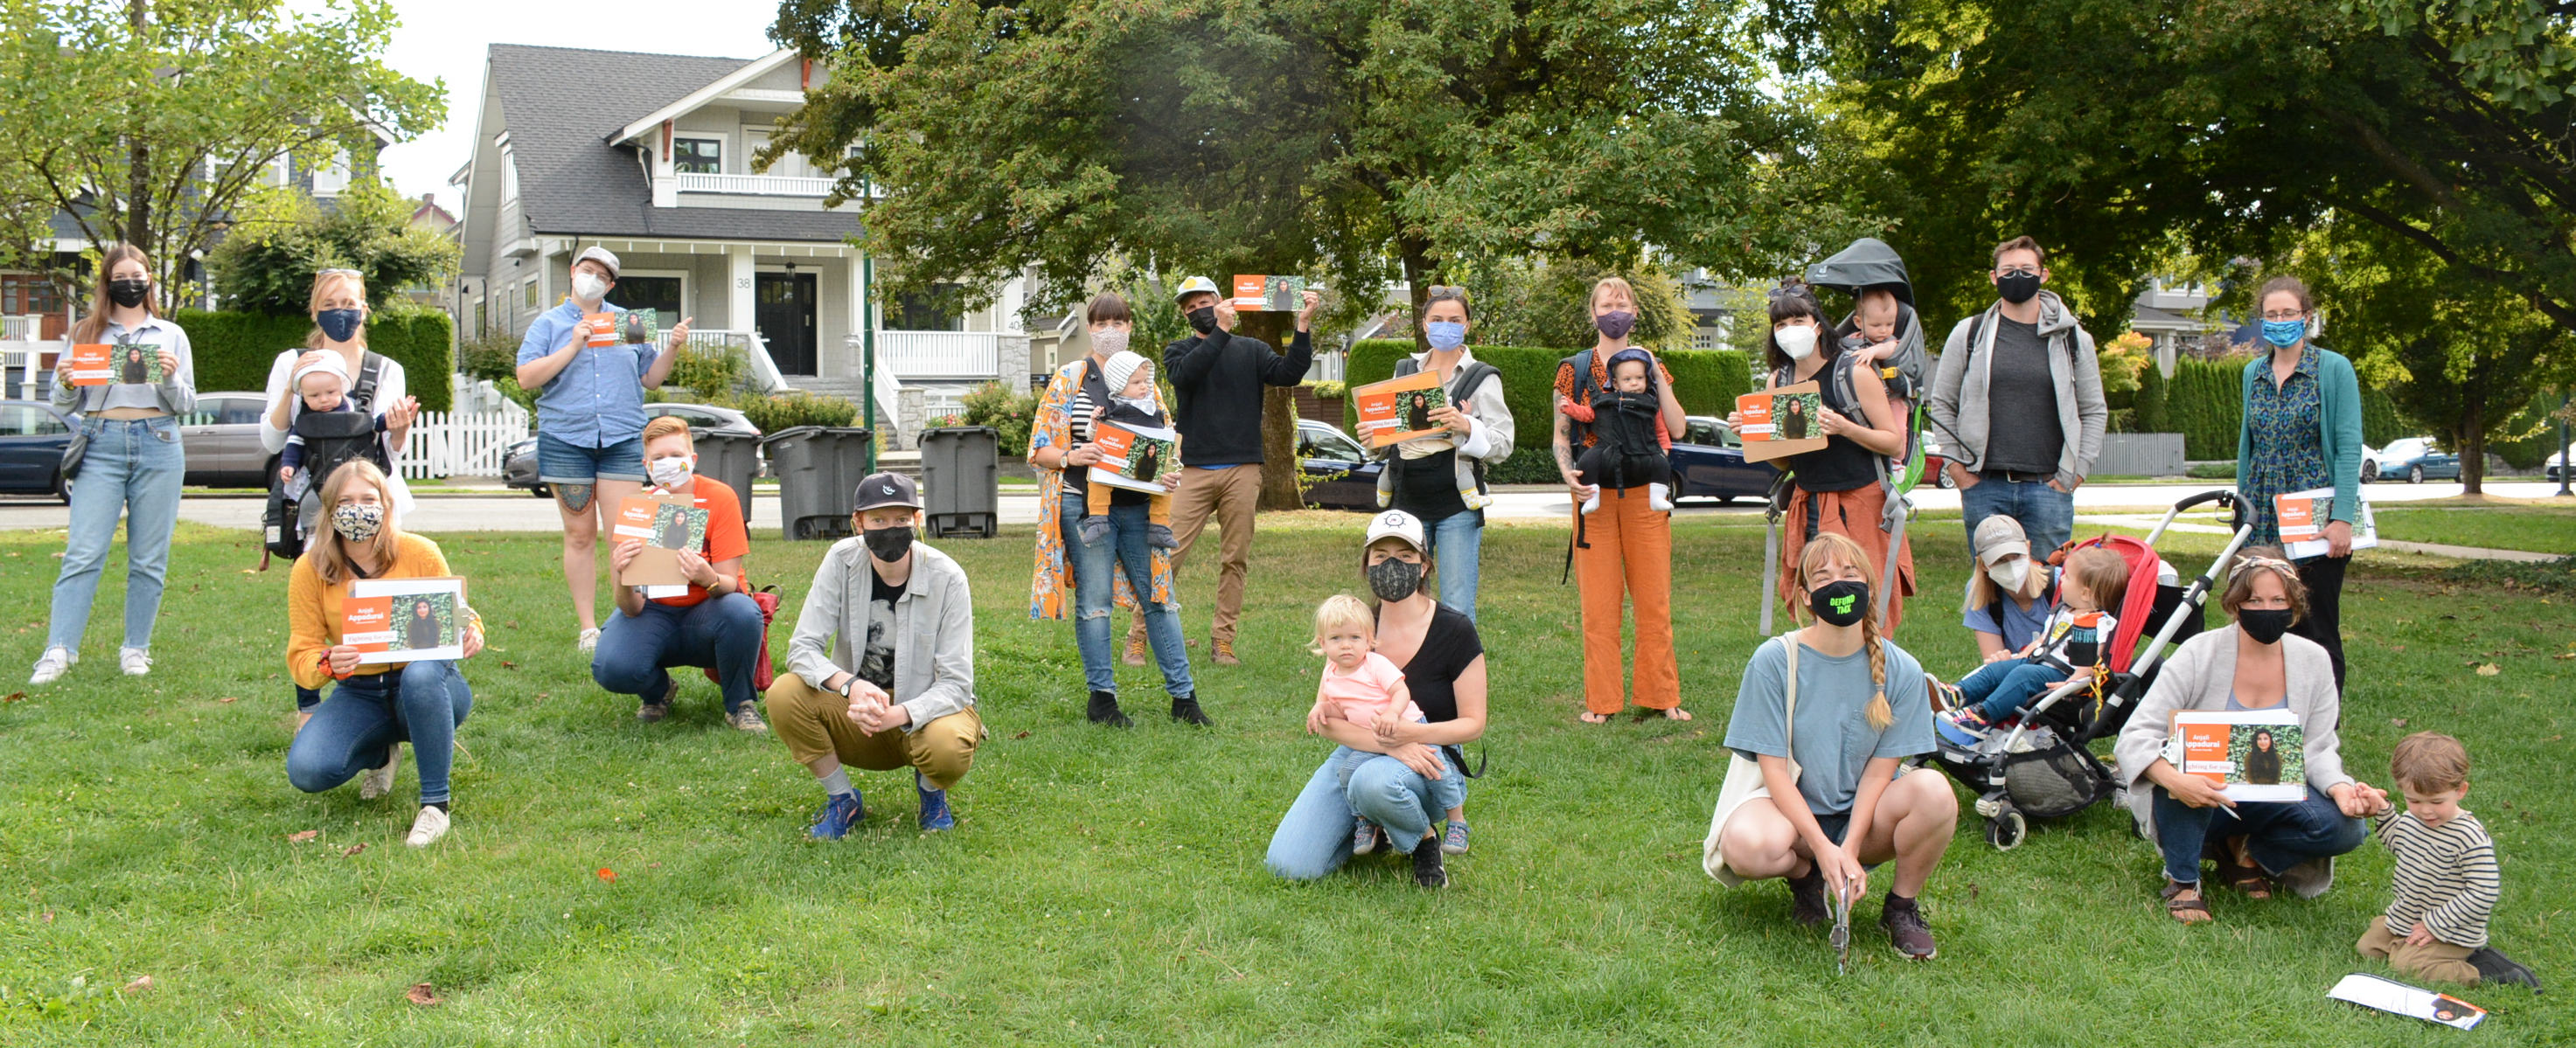 Parents and babies in a park getting ready to canvass for Anjali